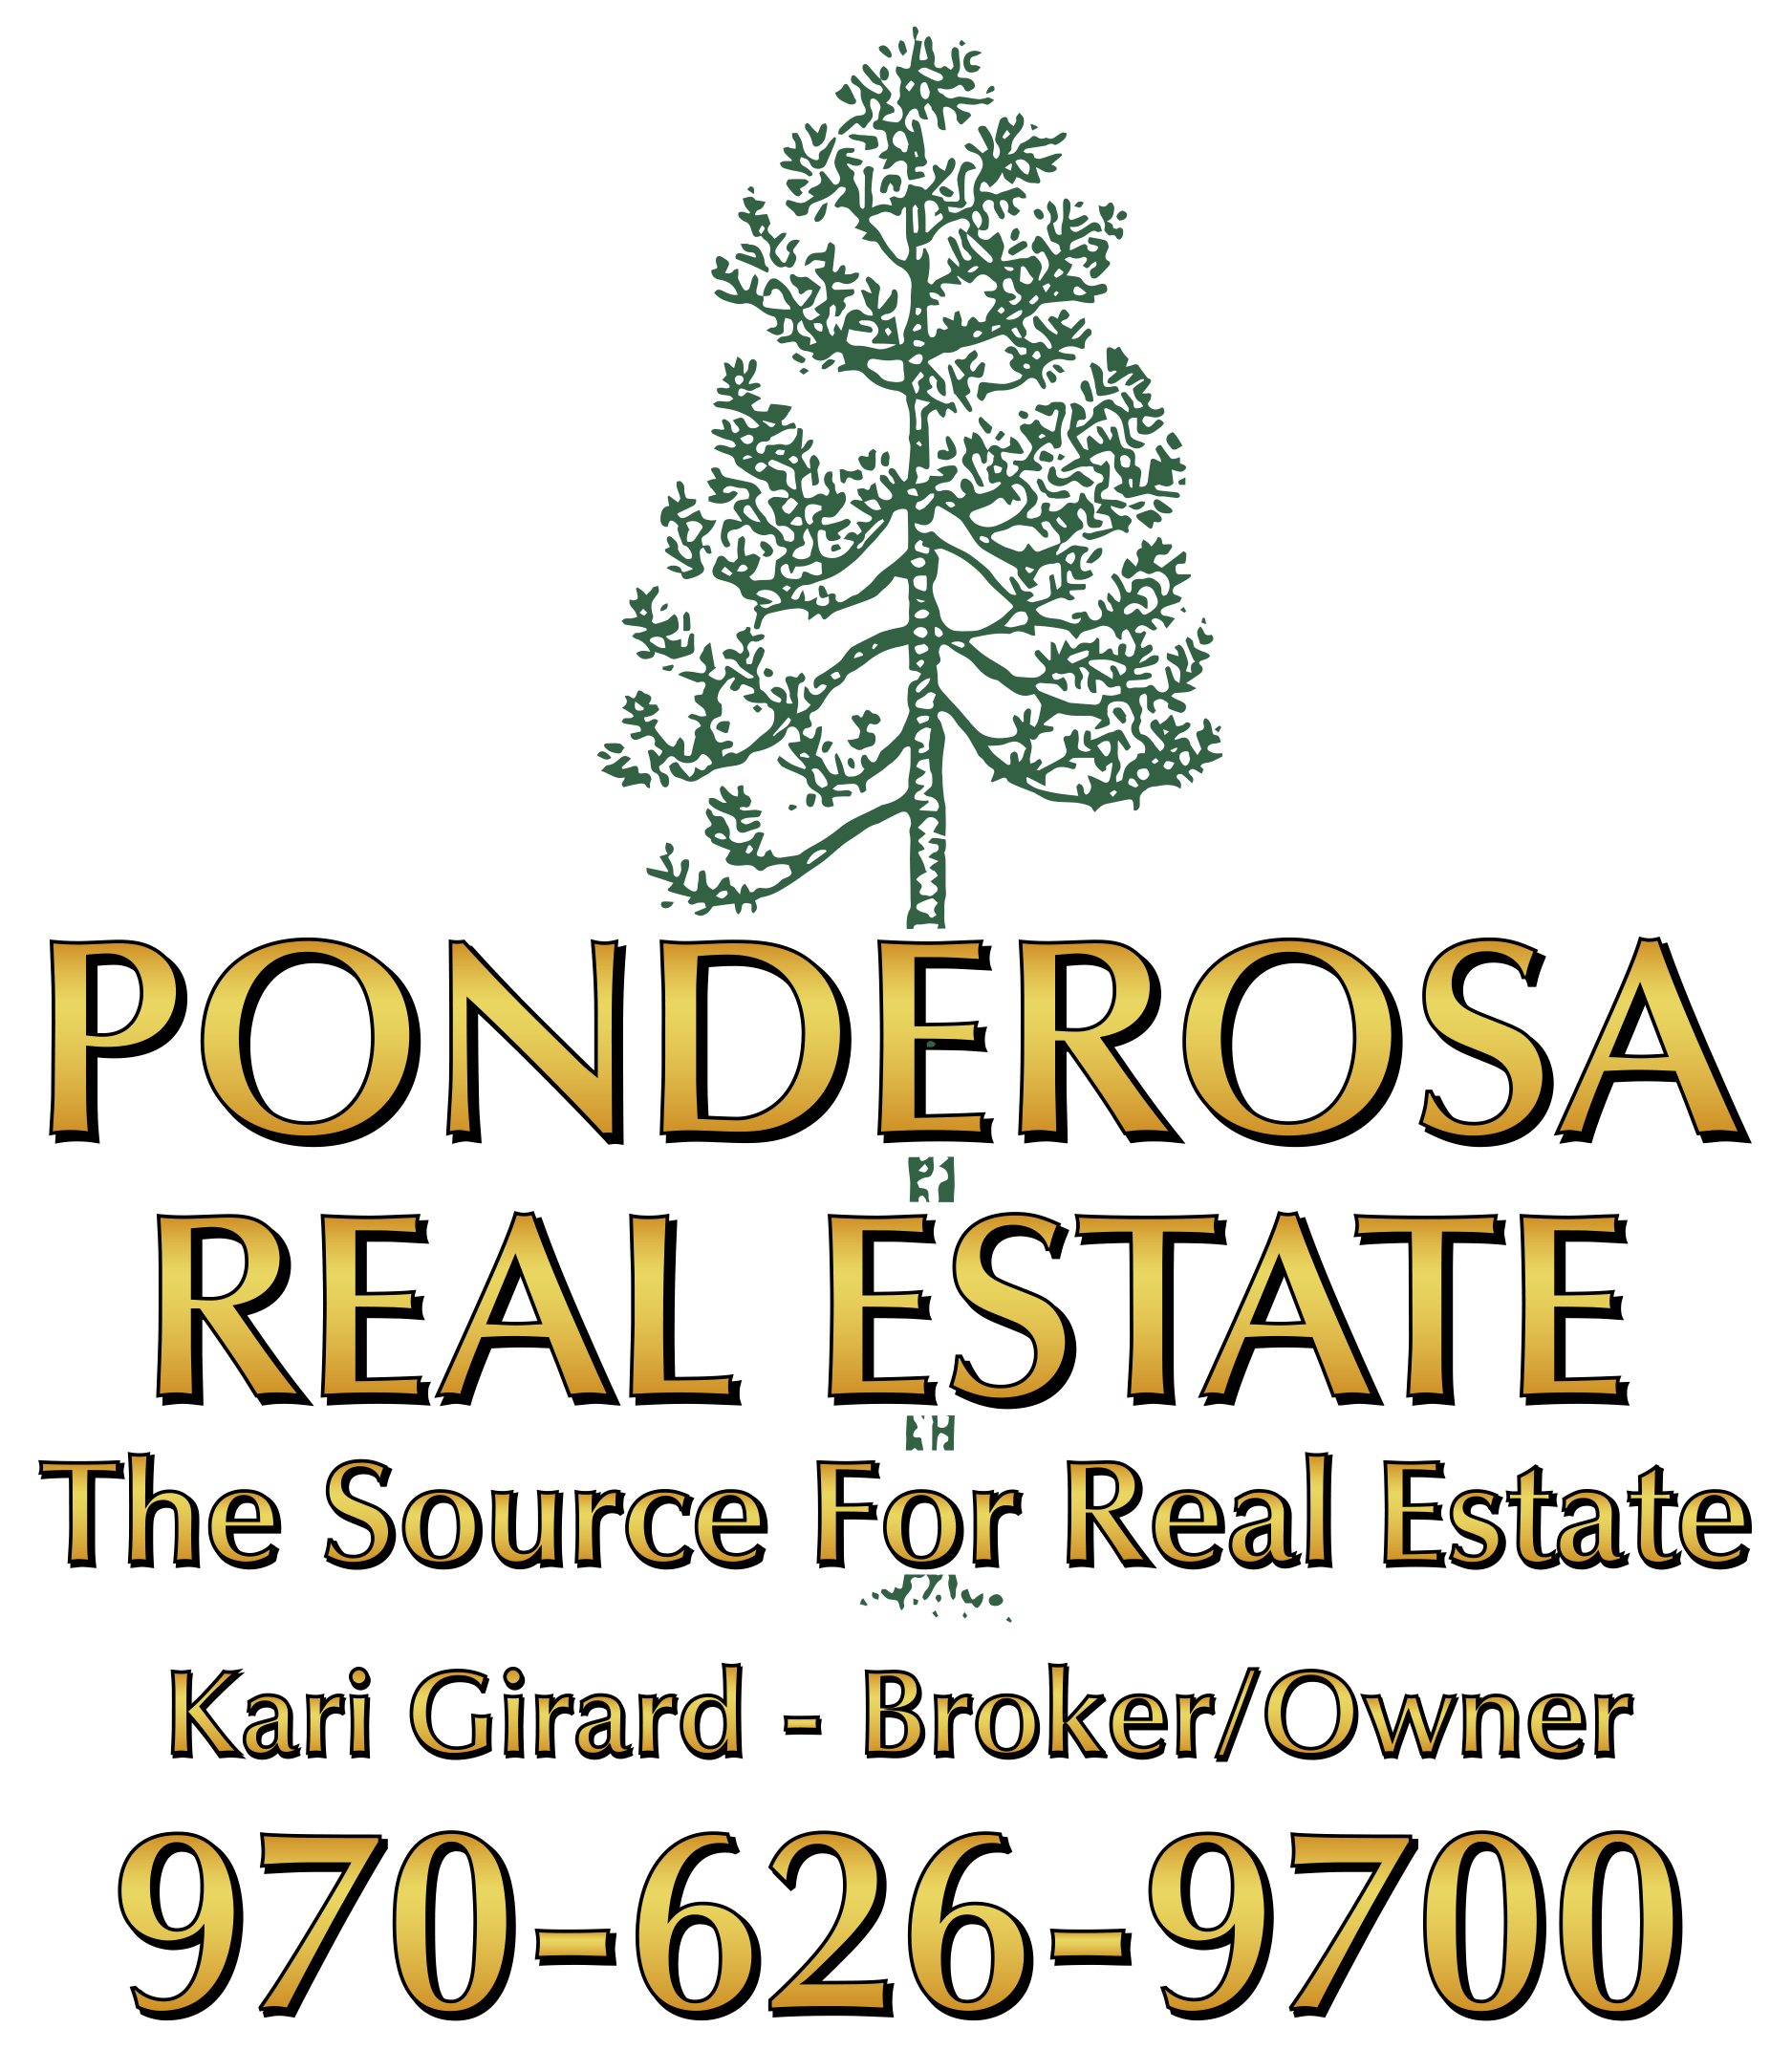 Ponderosa Real Estate